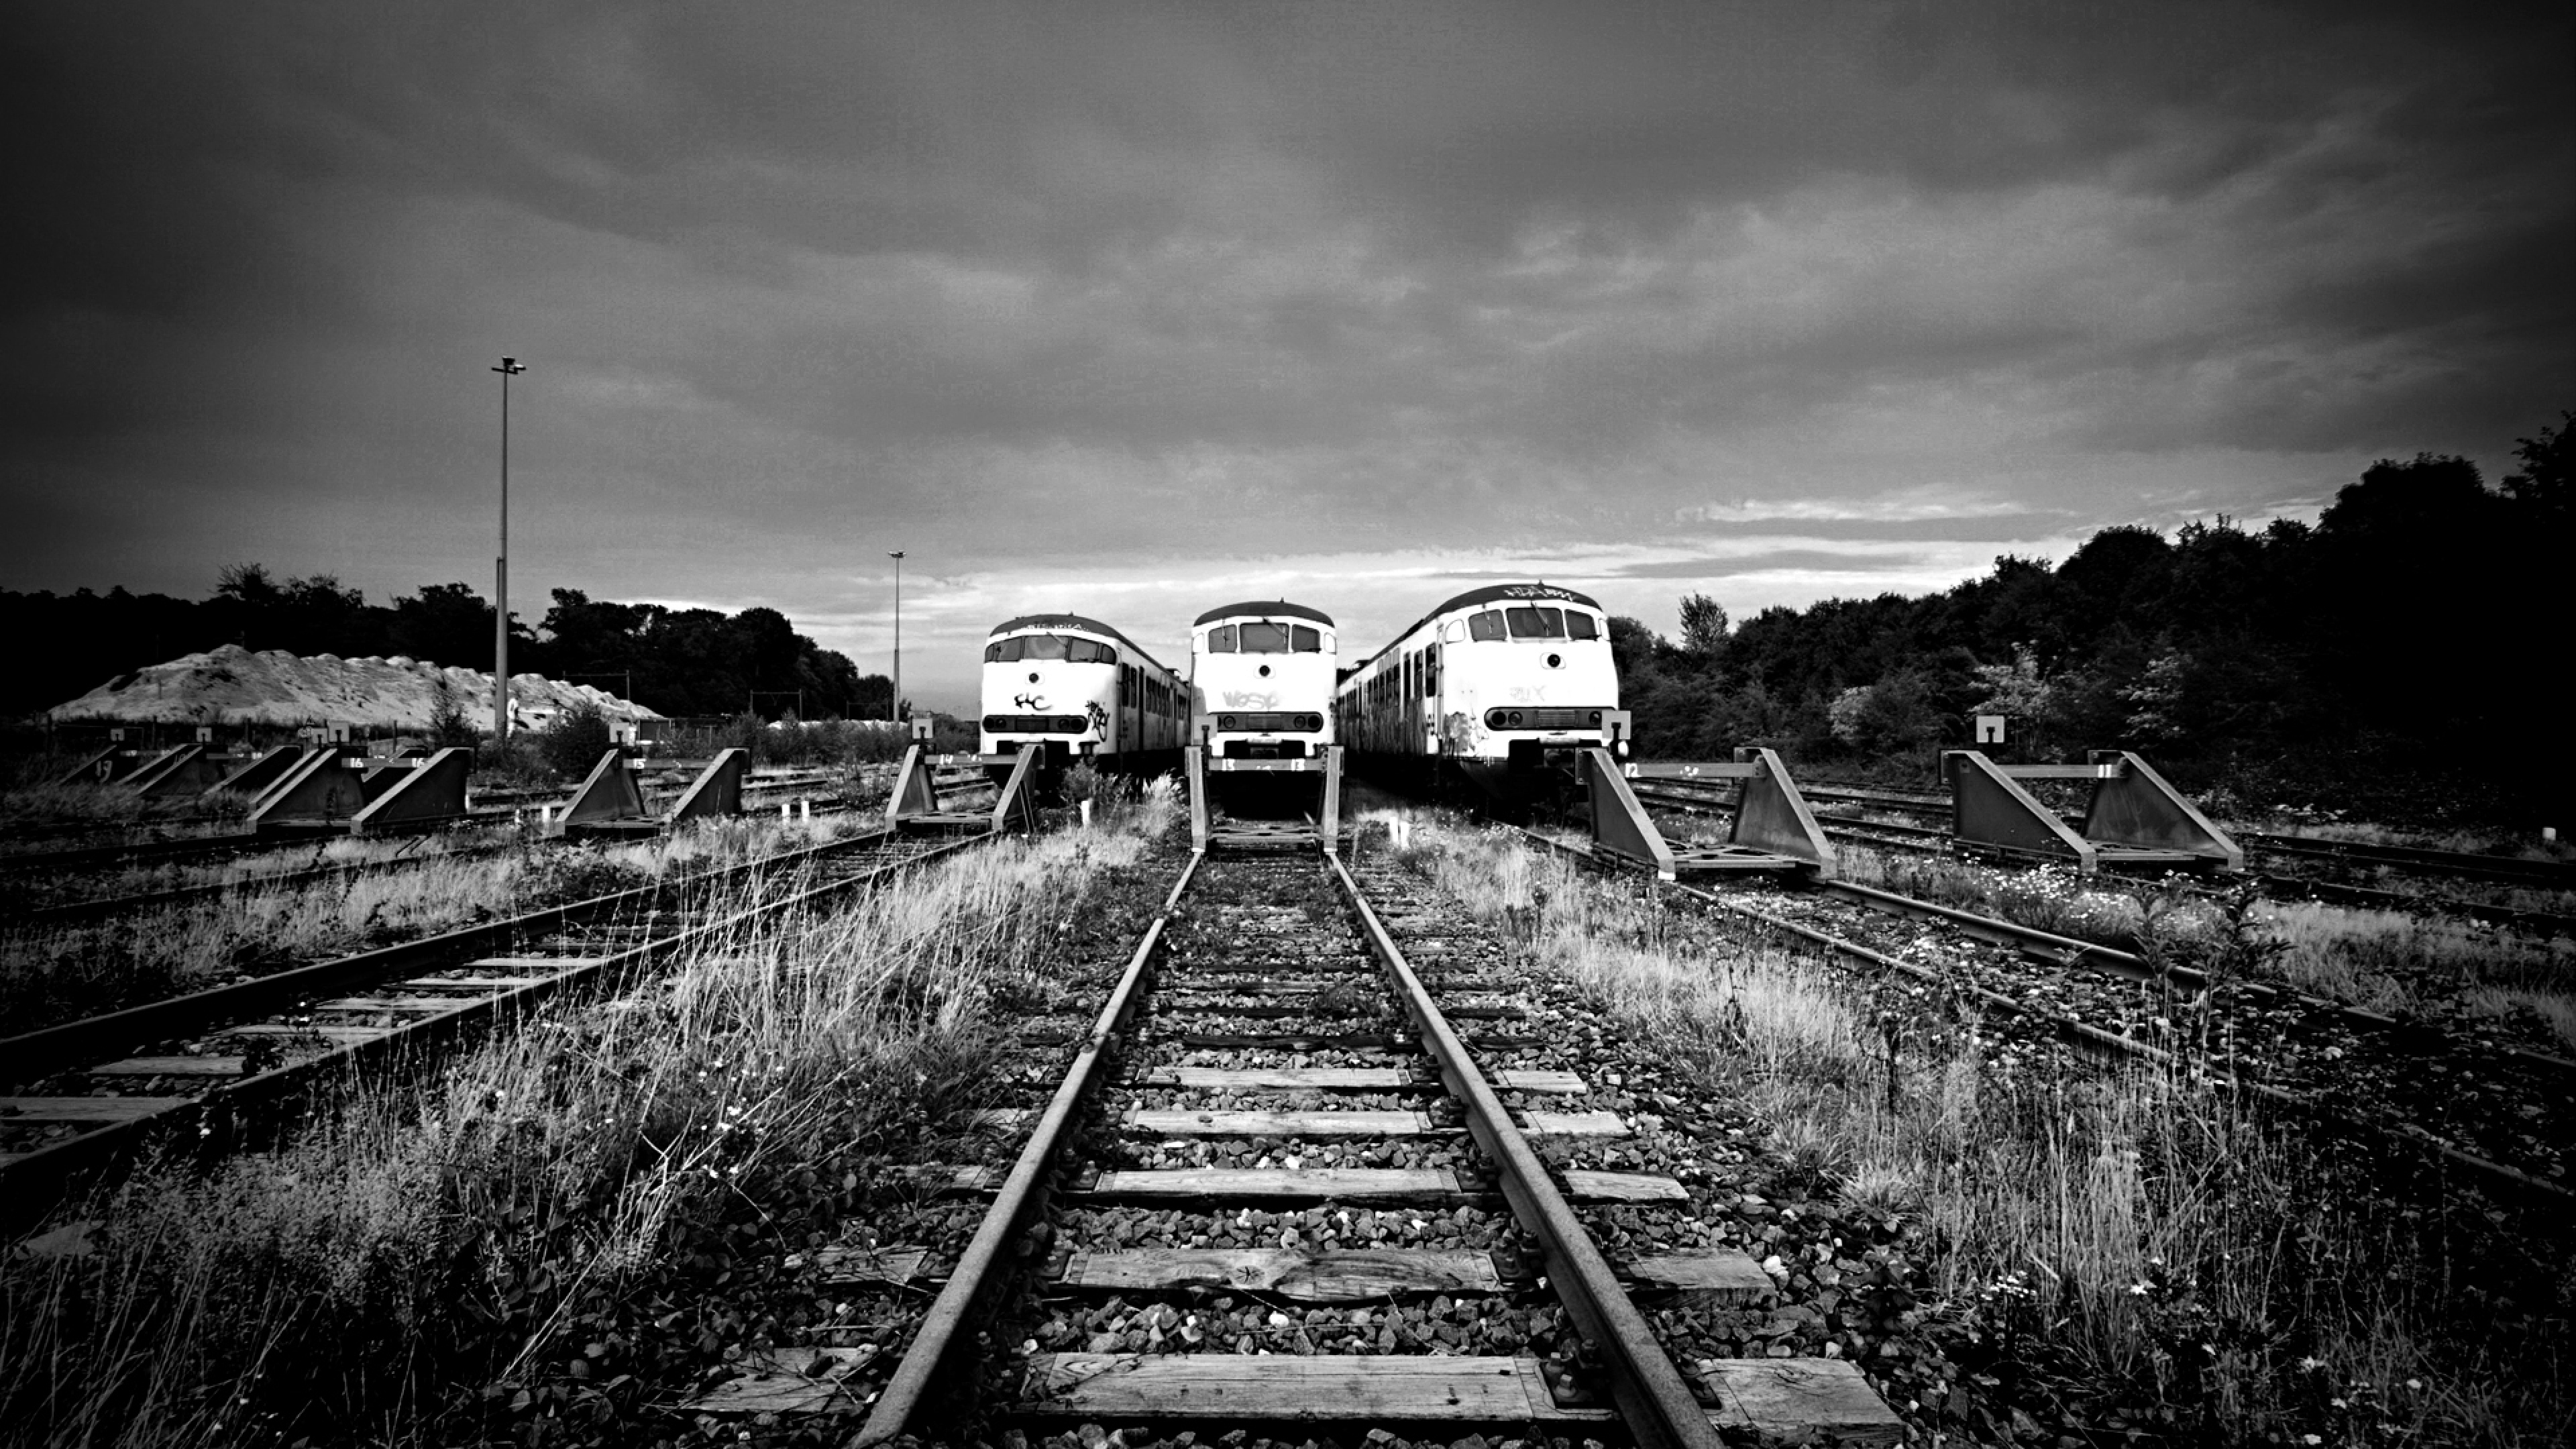 Railway Rails Black and white Wallpaper Background 4K Ultra HD 3840x2160